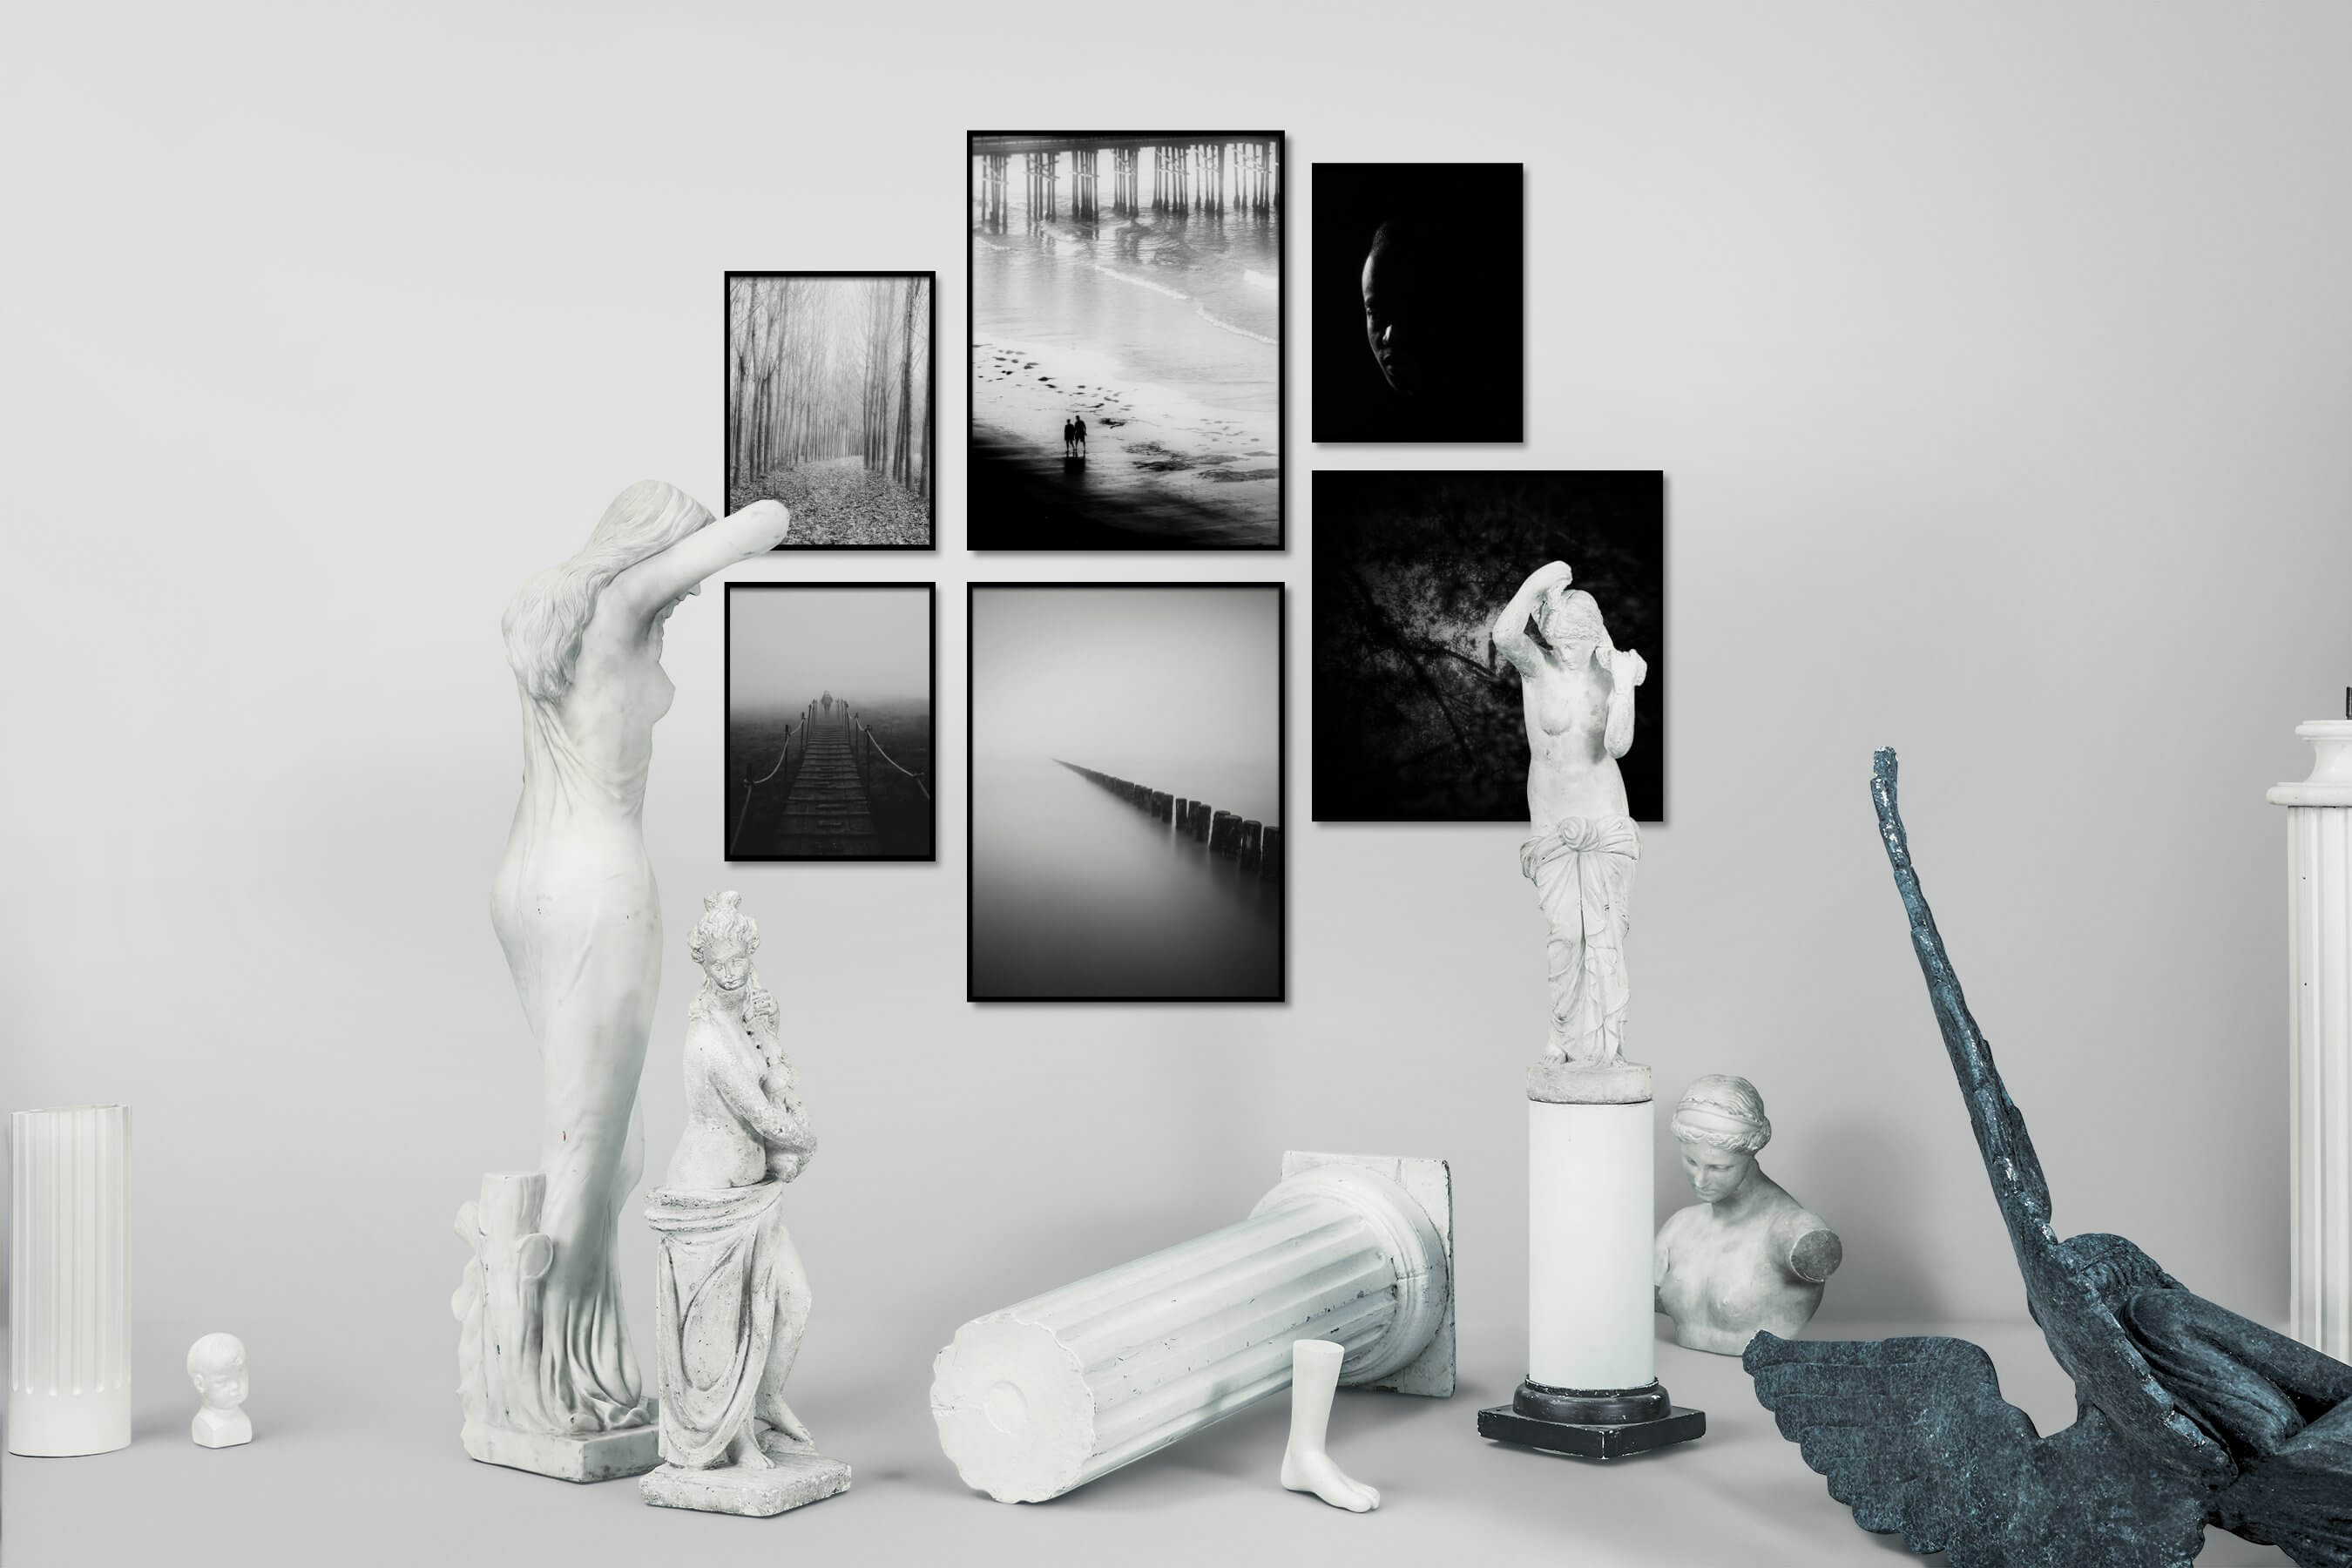 Gallery wall idea with six framed pictures arranged on a wall depicting Black & White, Nature, Beach & Water, For the Moderate, Mindfulness, For the Minimalist, Fashion & Beauty, Dark Tones, and Artsy